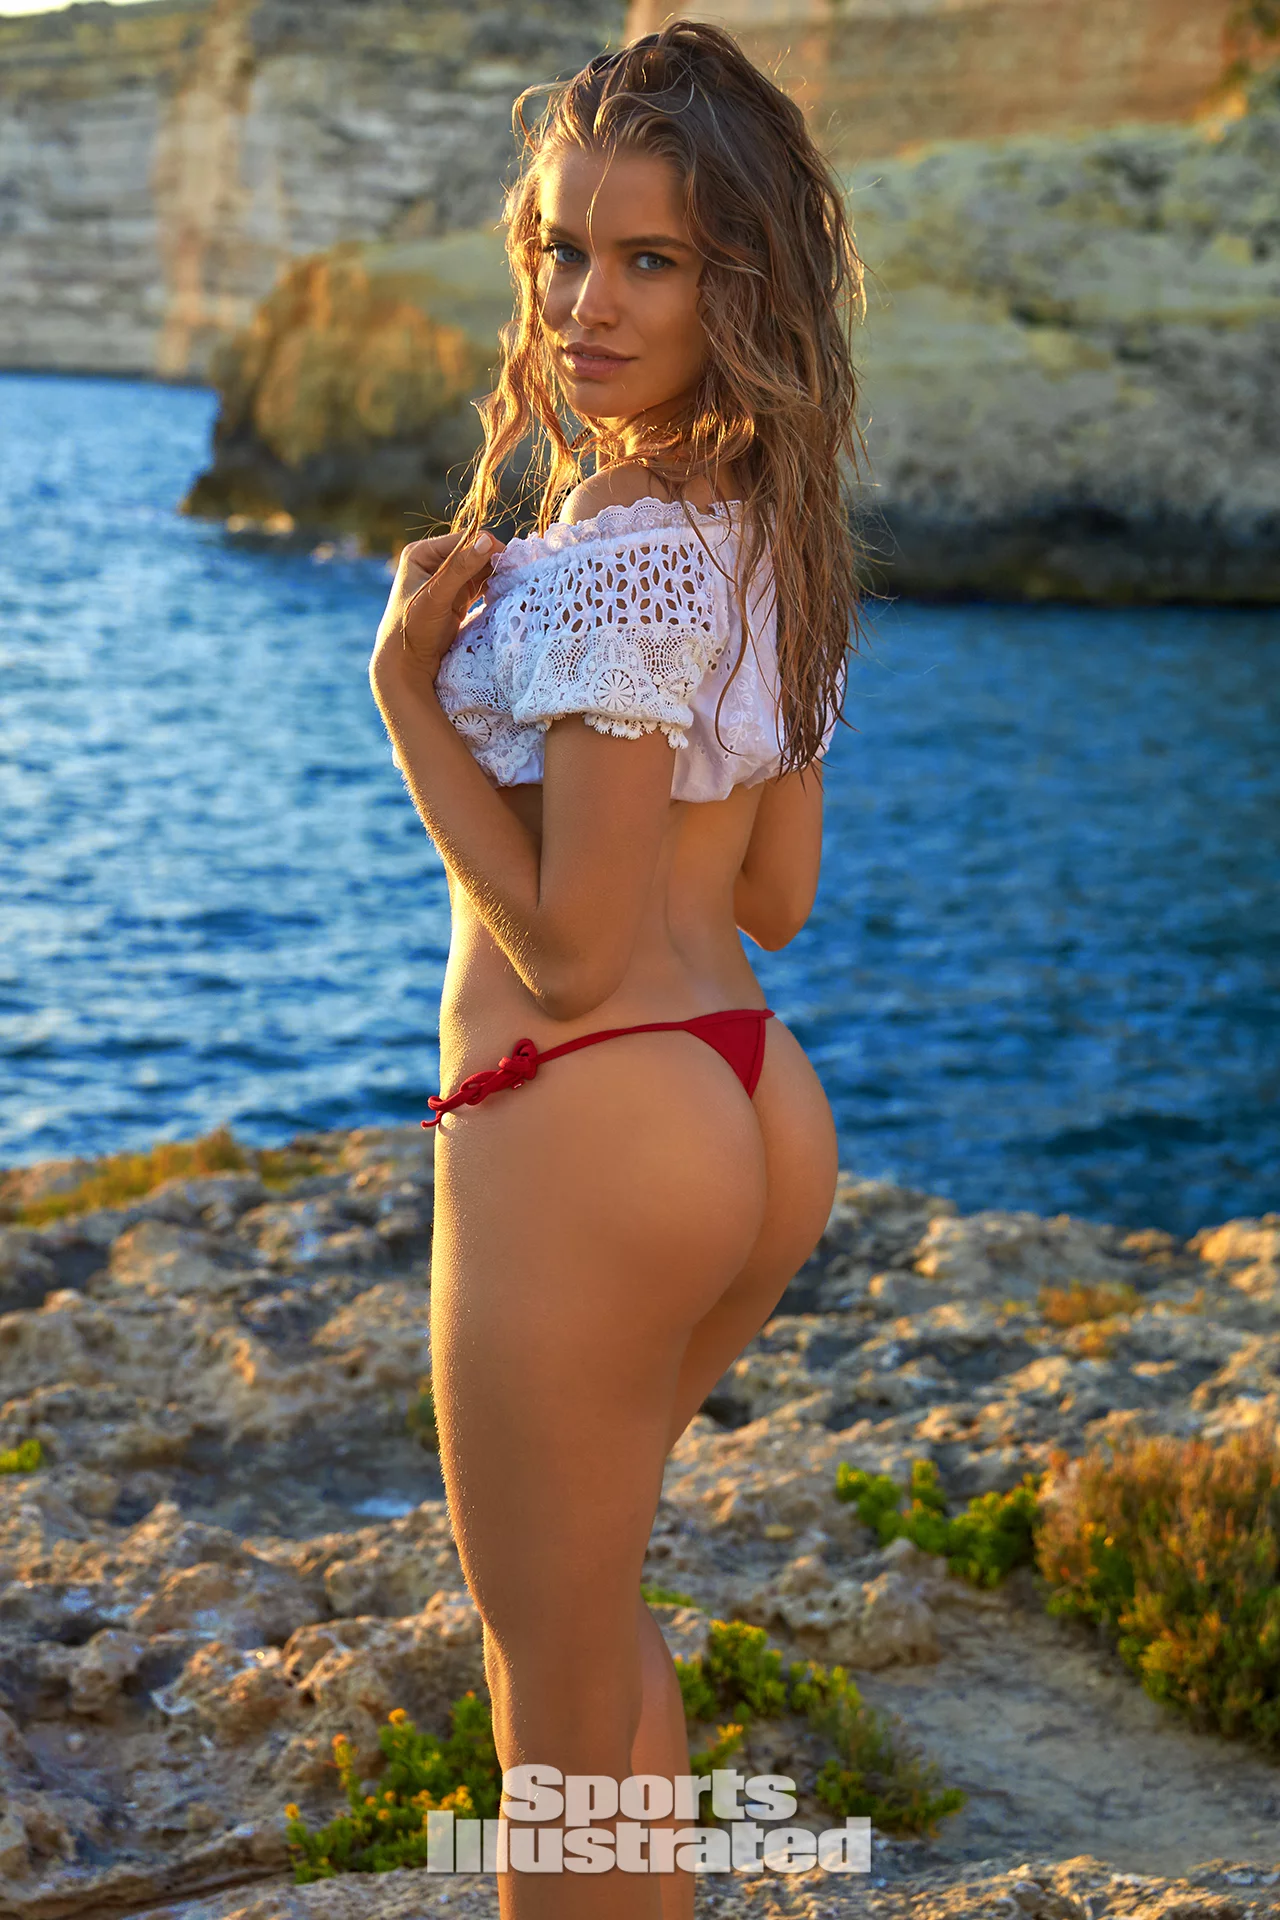 Tanya Mityushina for Sports Illustrated Swimsuit Issue 2018